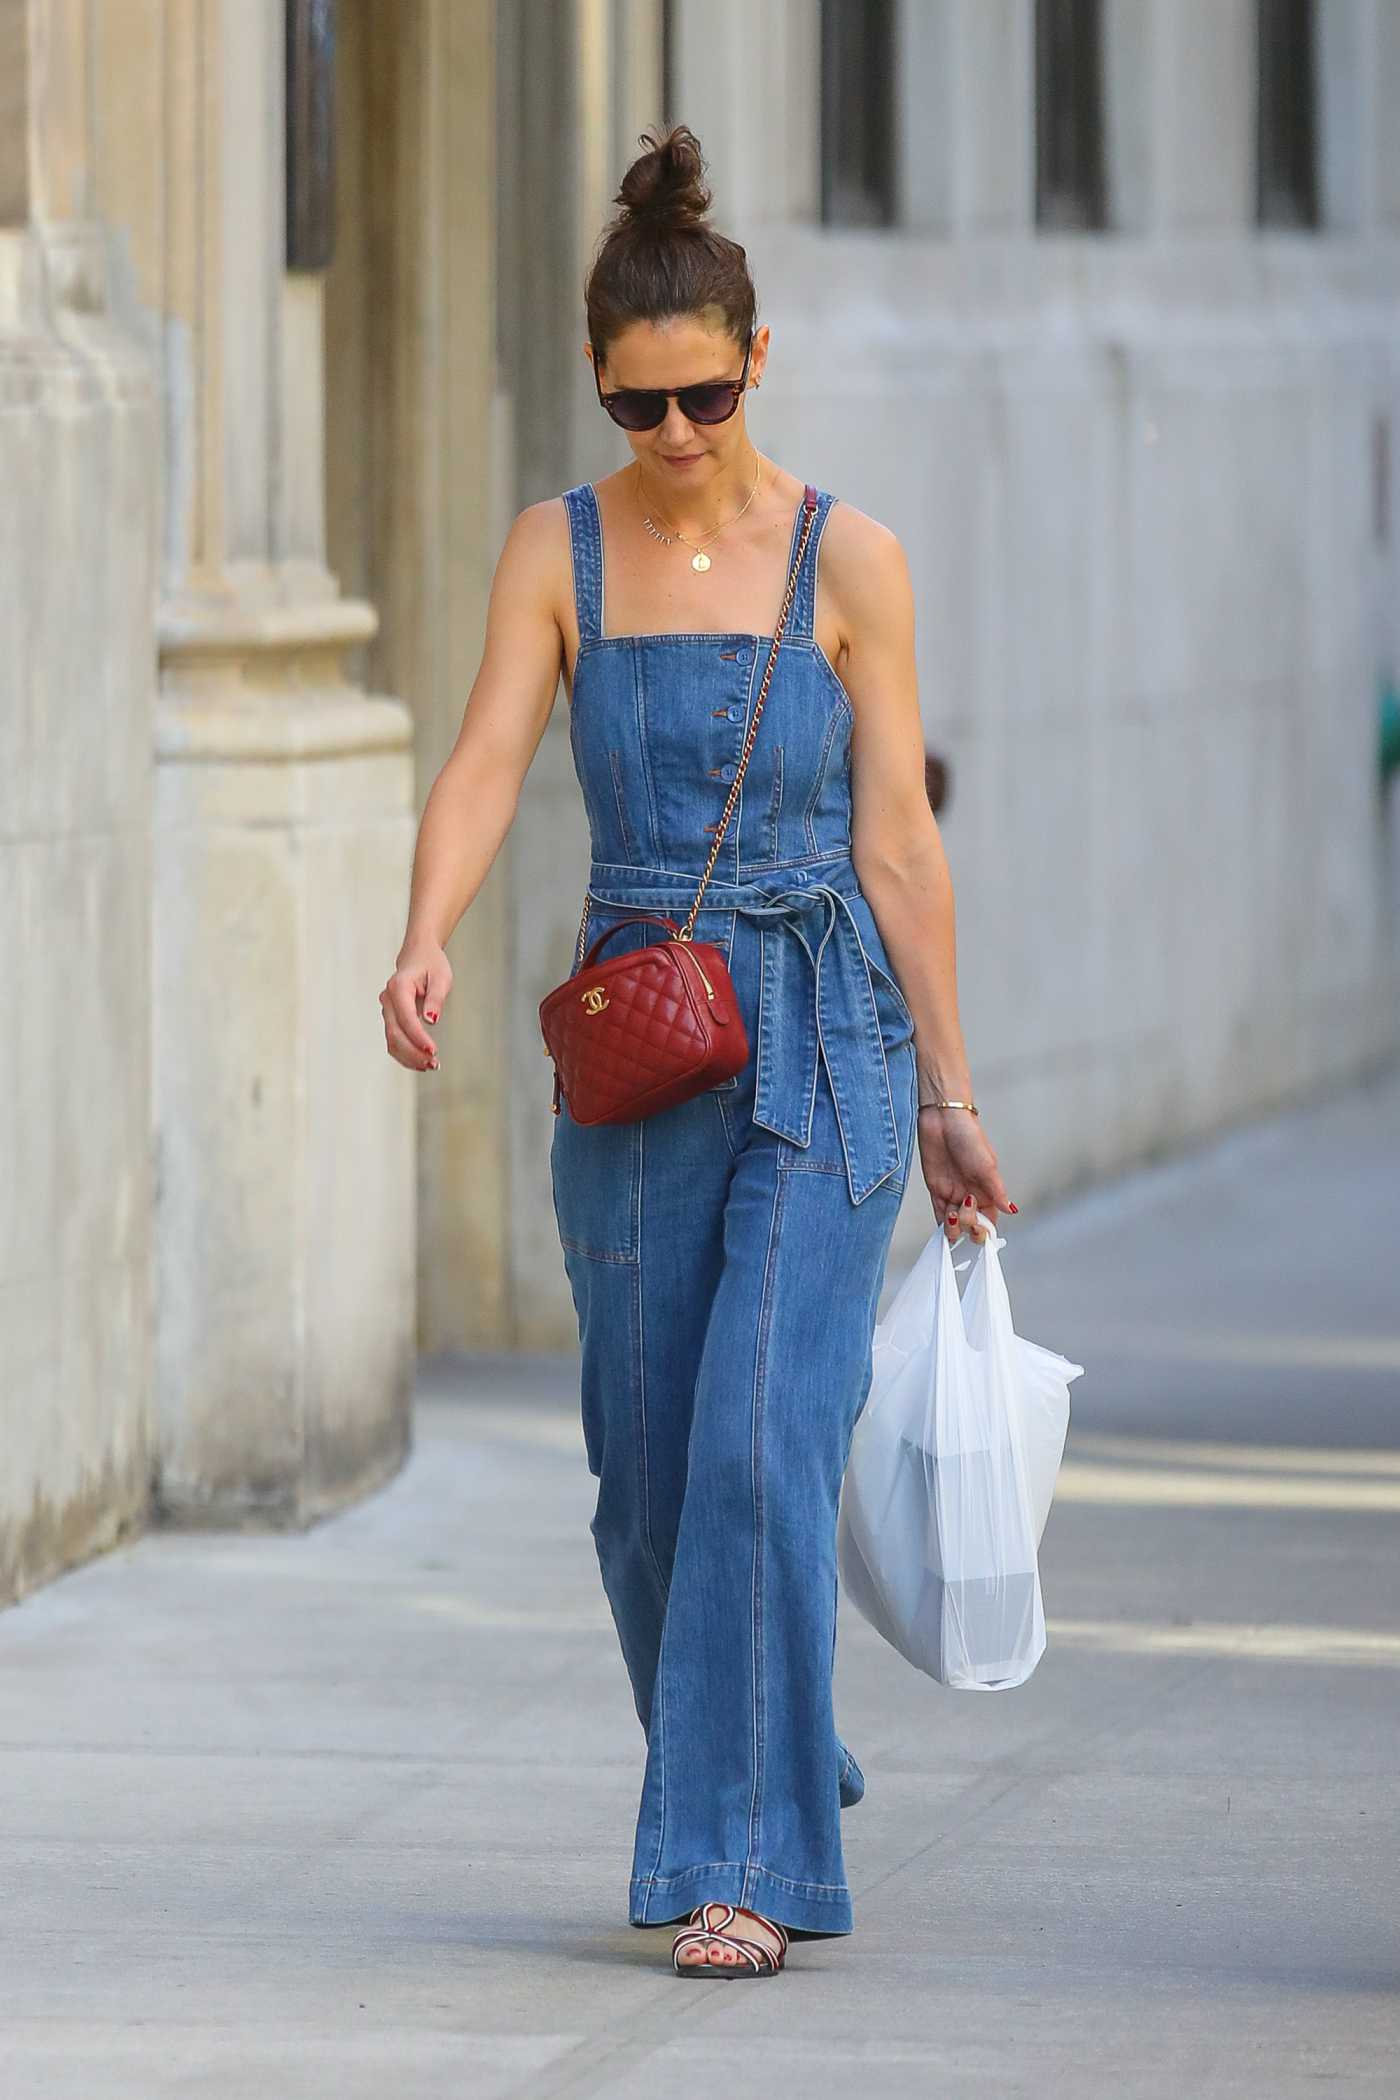 Katie Holmes in a Blue Denim Jumpsuit Goes Shopping in New York City 06/22/2019